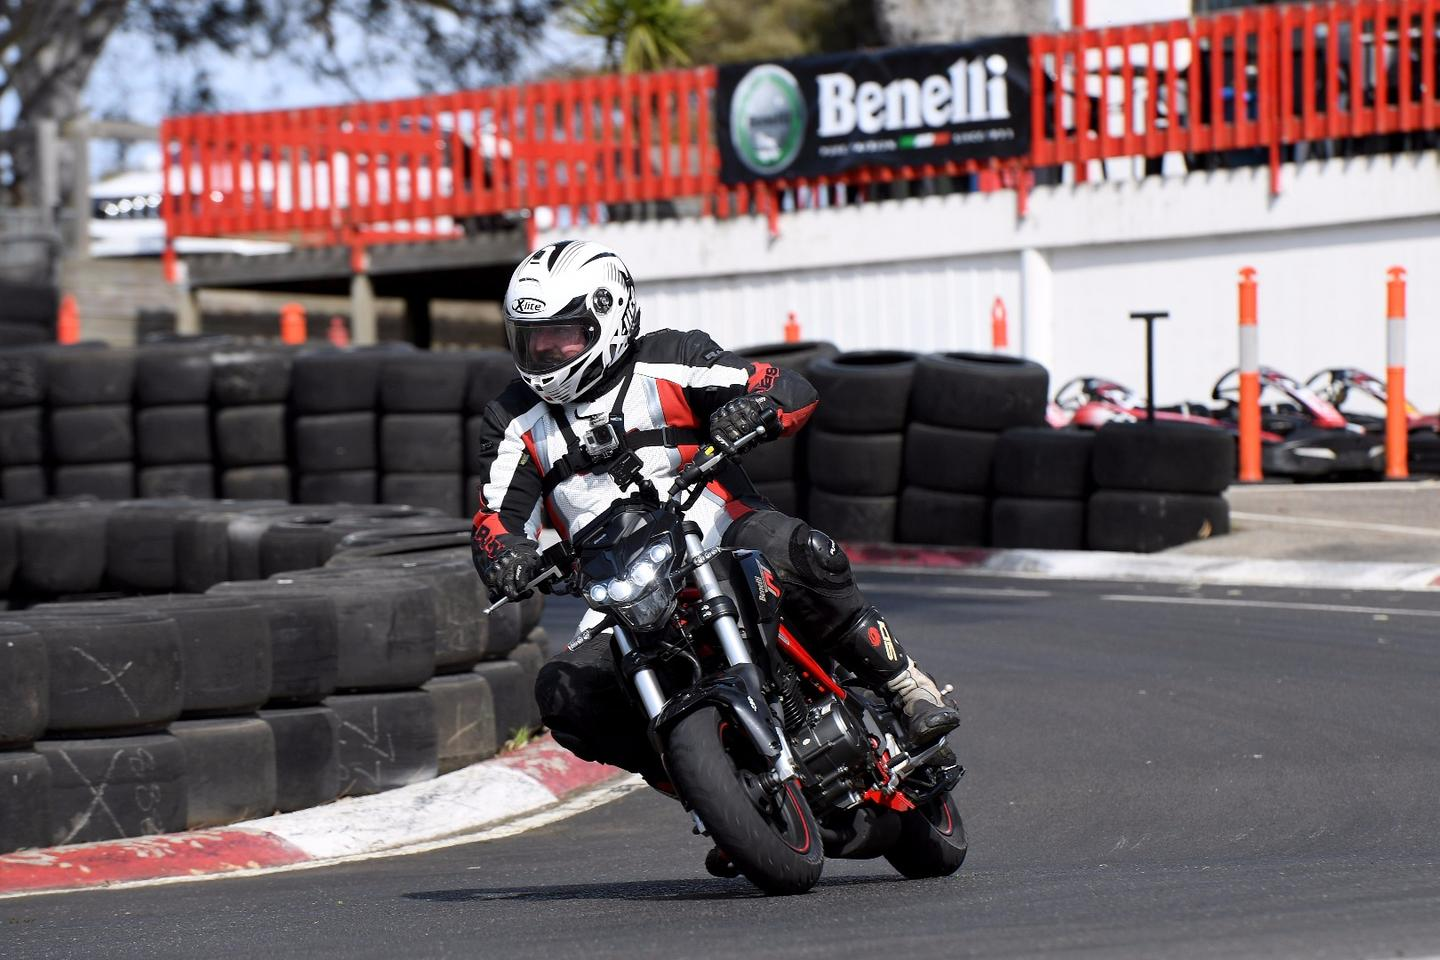 Benelli TnT125: wicked fun on a g-kart track